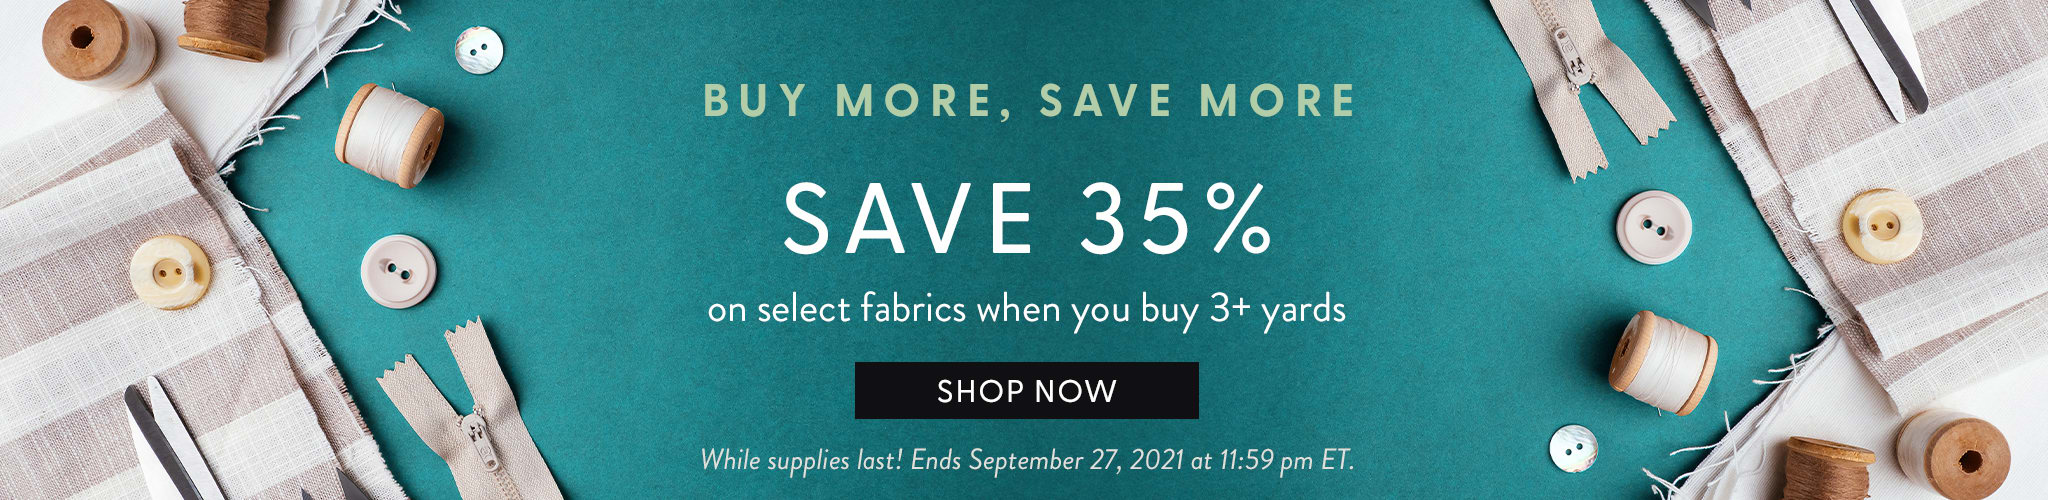 Buy More, Save More. Save 35% on select fabrics when you buy 3+ yards. Shop now. While Supplies Last! Ends September 27, 2021 at 11:59 pm ET.